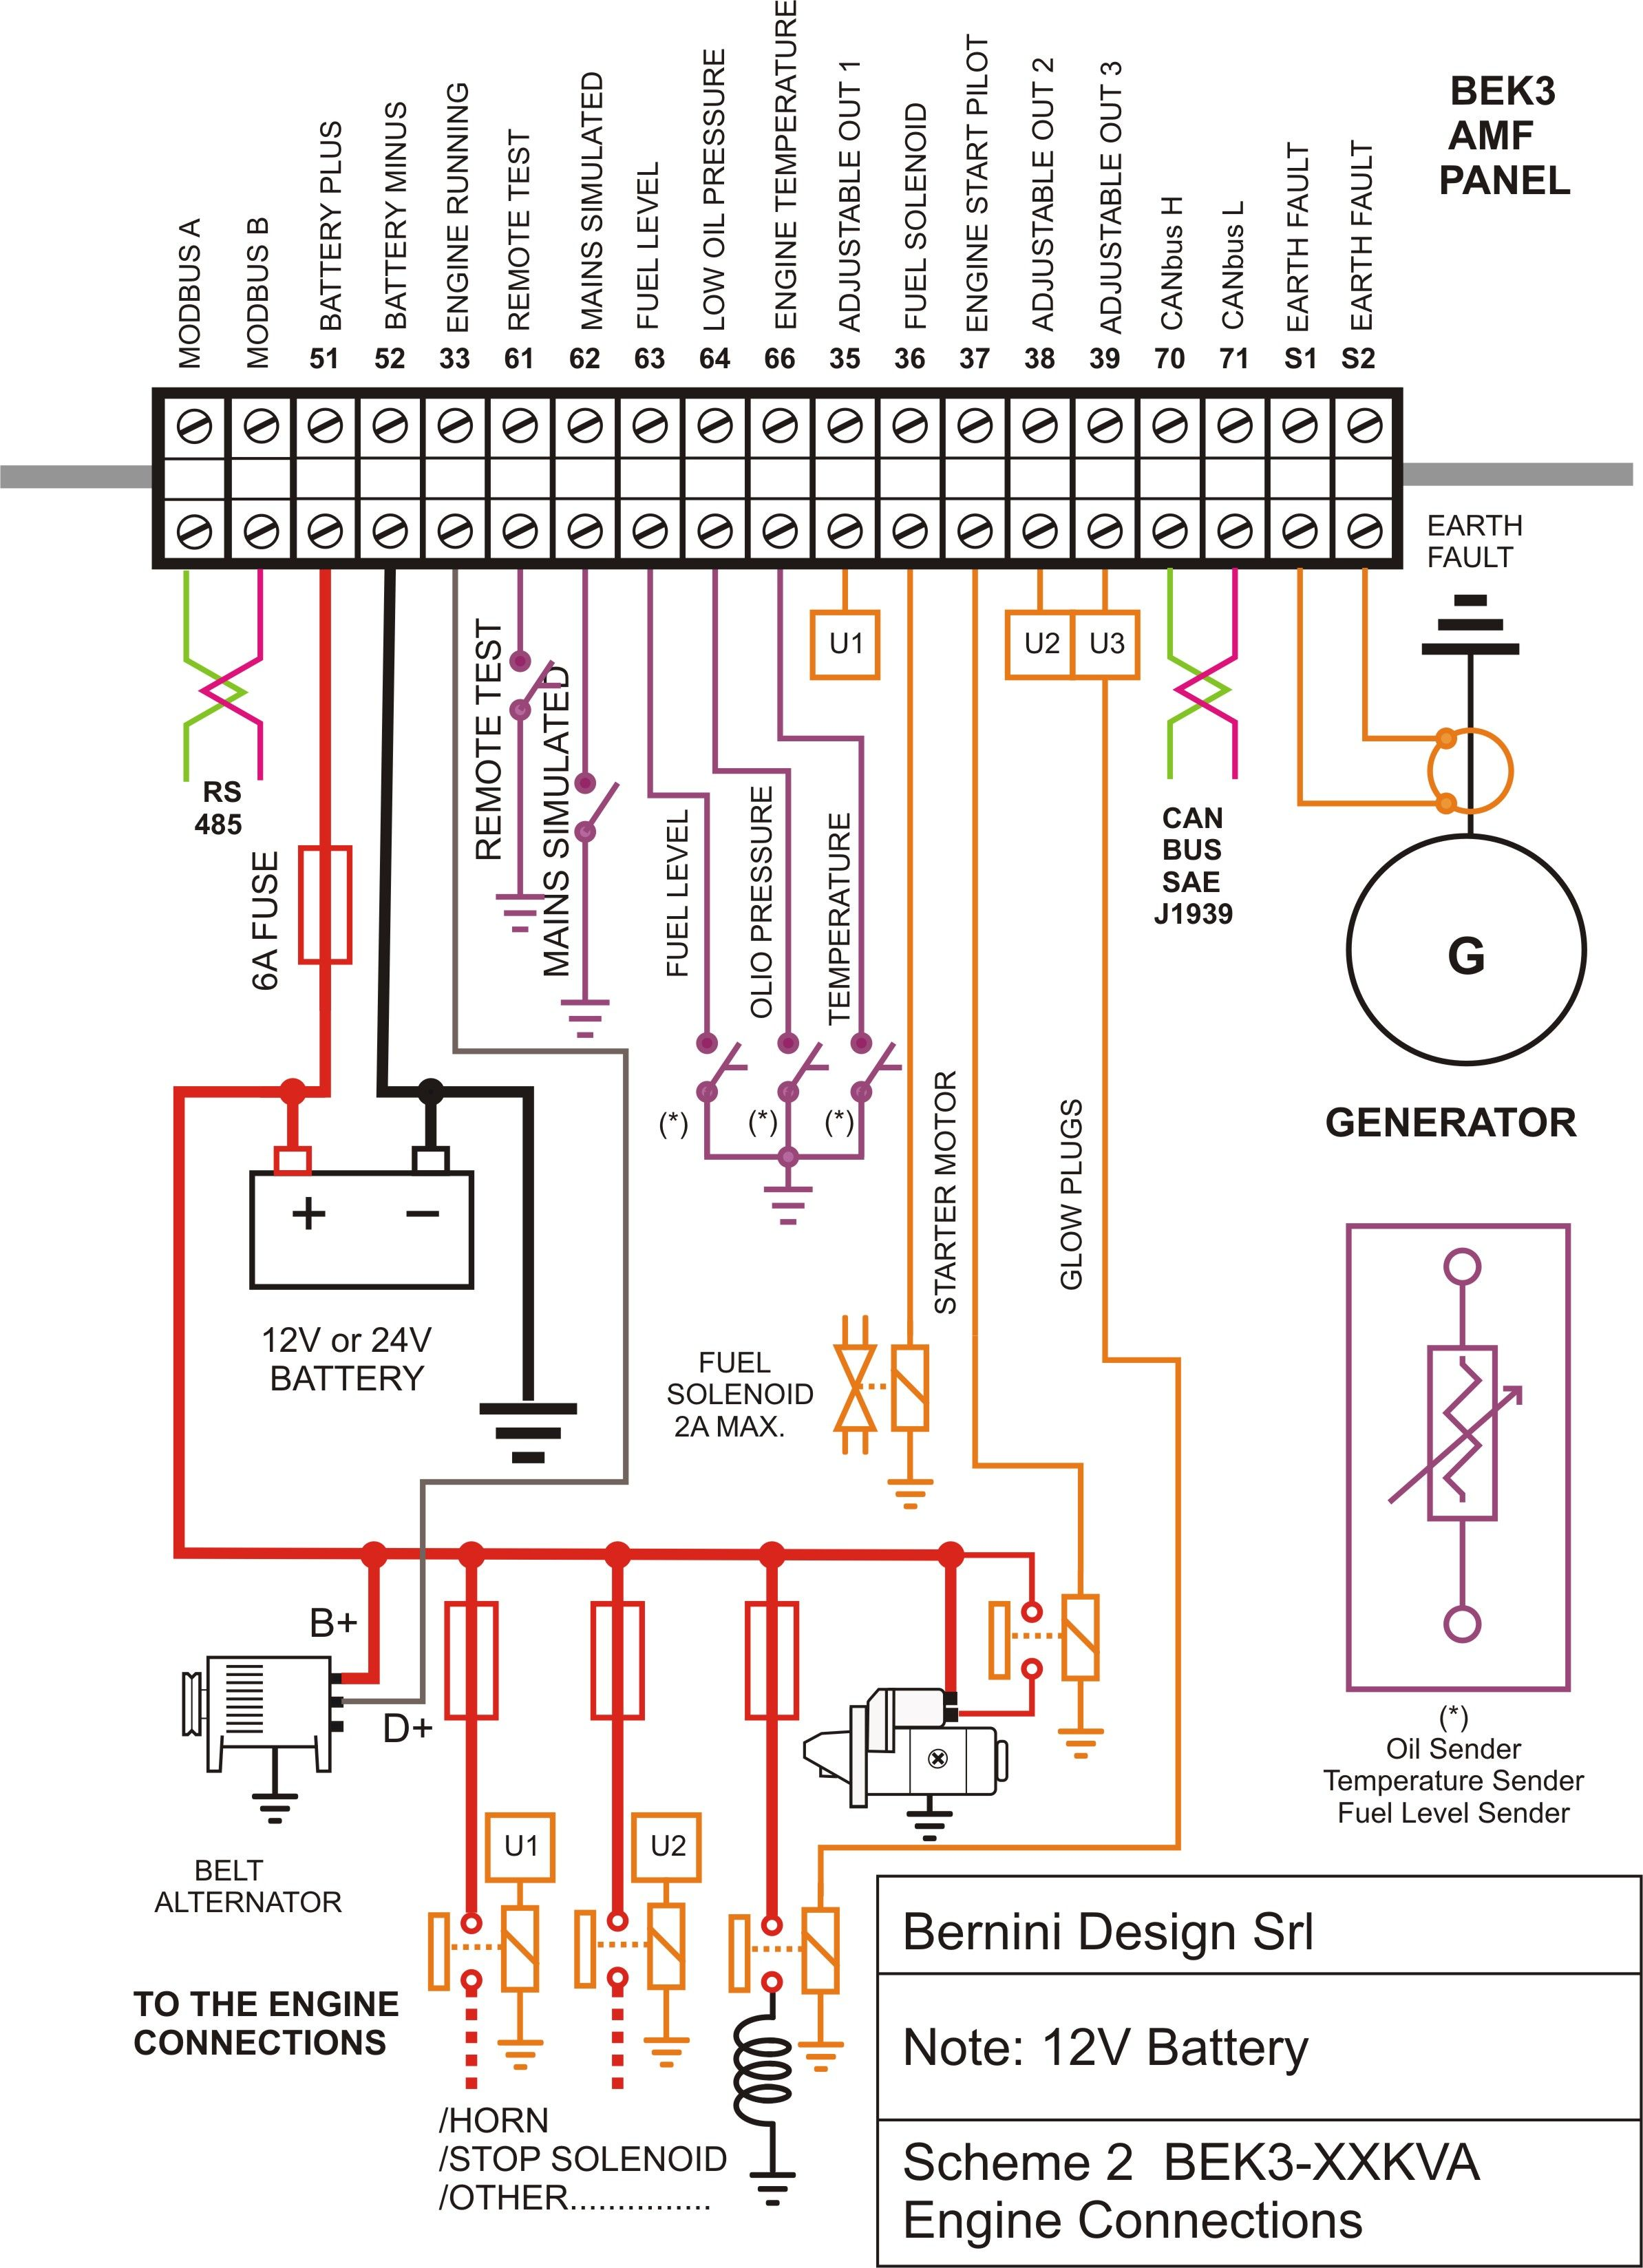 Generator Home Wiring | Wiring Diagram on 3 phase electric panel diagrams, 3 phase inverter diagram, 3 phase plug, 3 phase circuit, 3 phase connector diagram, 3 phase block diagram, 3 phase converter diagram, 3 phase generator diagram, 3 phase regulator, 3 phase transformers diagram, 3 phase electricity diagram, ceiling fan installation diagram, 3 phase cable, 3 phase motor connection diagram, 3 phase wire, 3 phase relay, 3 phase coil diagram, 3 phase thermostat diagram, 3 phase schematic diagrams, 3 phase power,